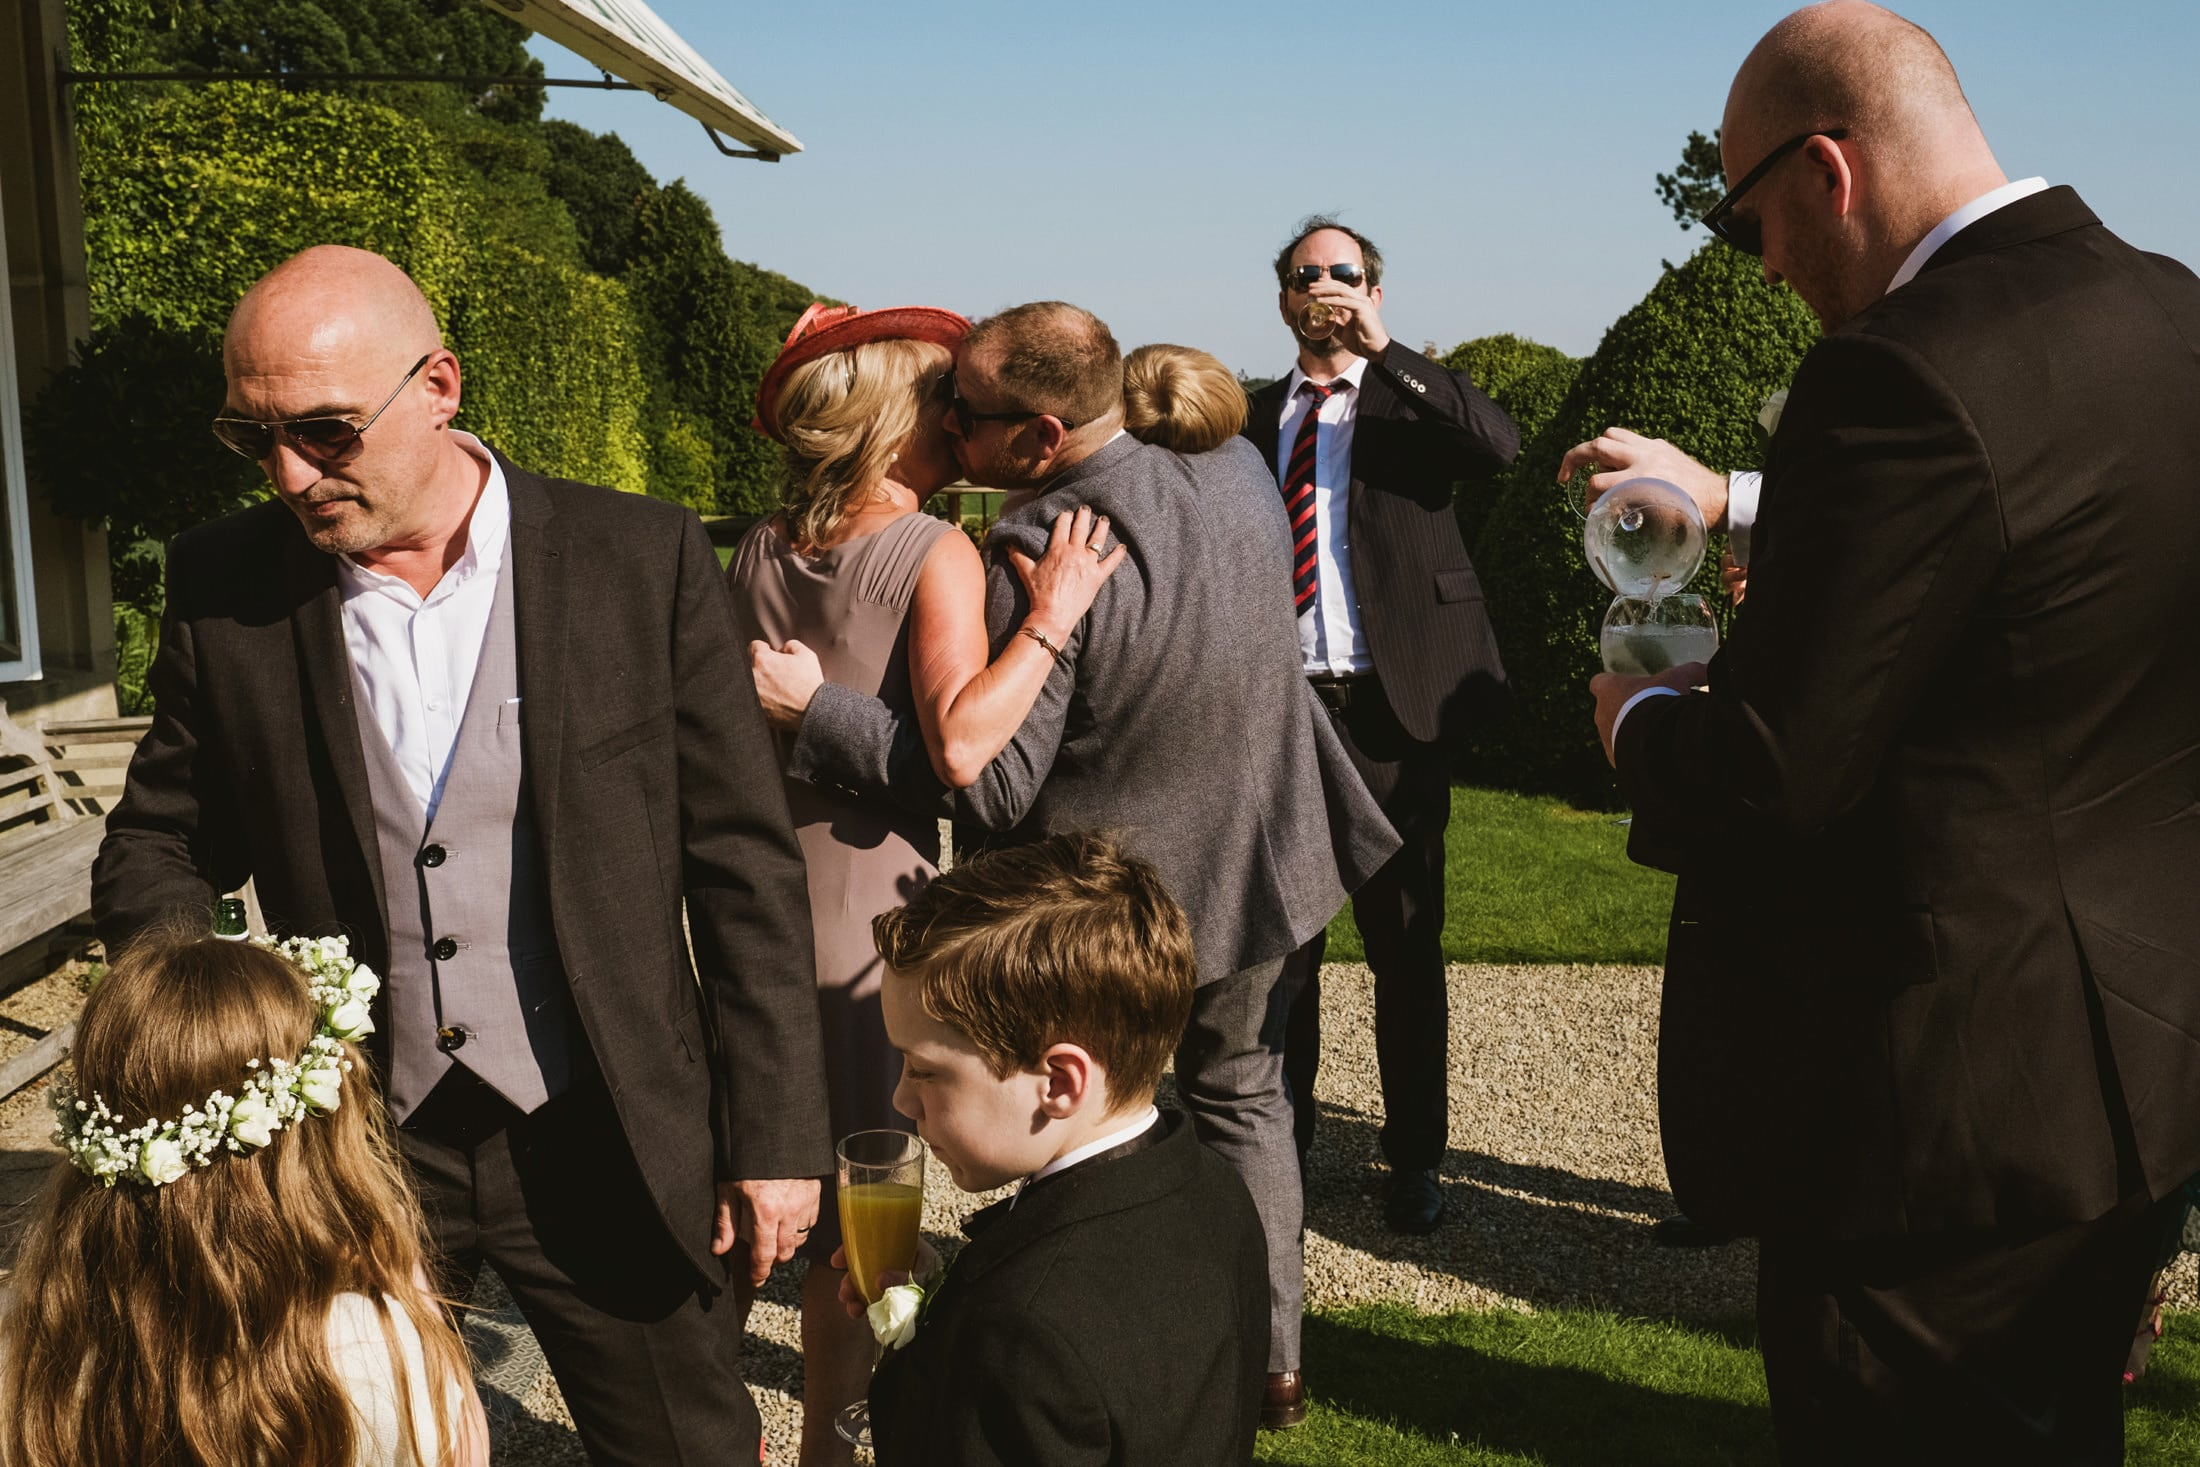 wedding reception at Goldsborough Hall, layered street photograph